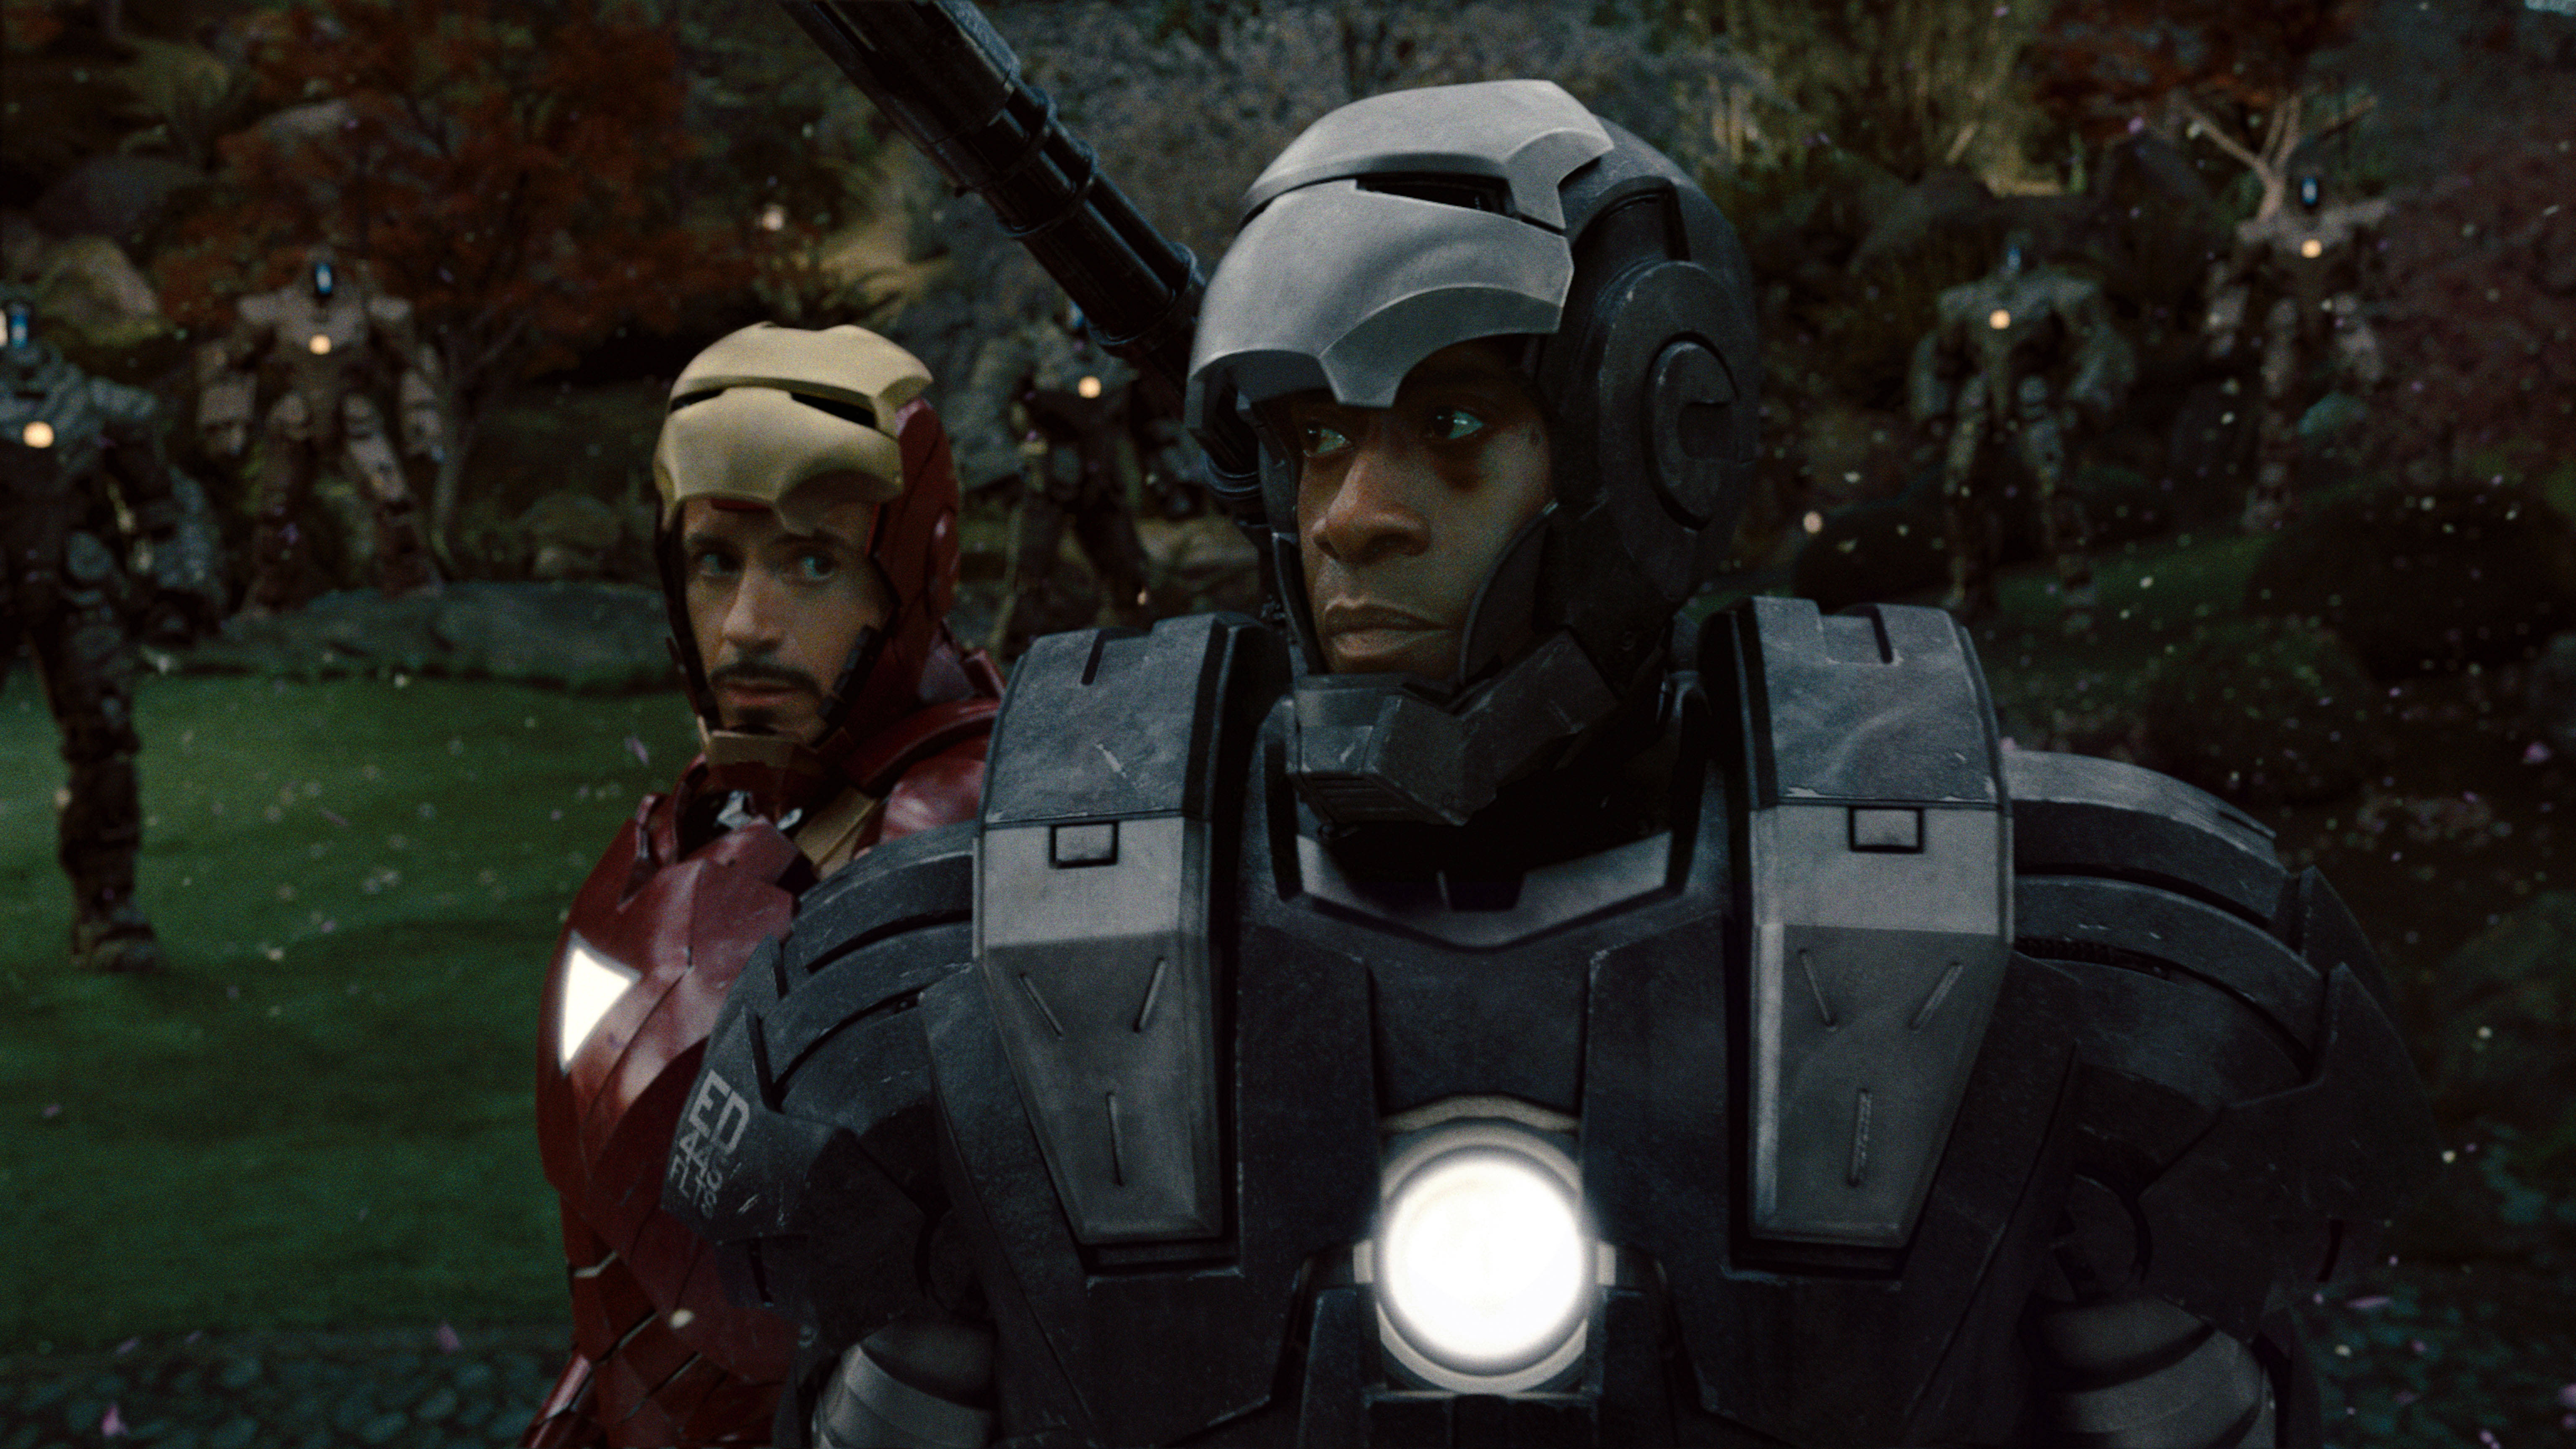 http://img3.wikia.nocookie.net/__cb20100731091448/marvelmovies/images/d/d8/War_Machine_%26_Iron_Man.jpg